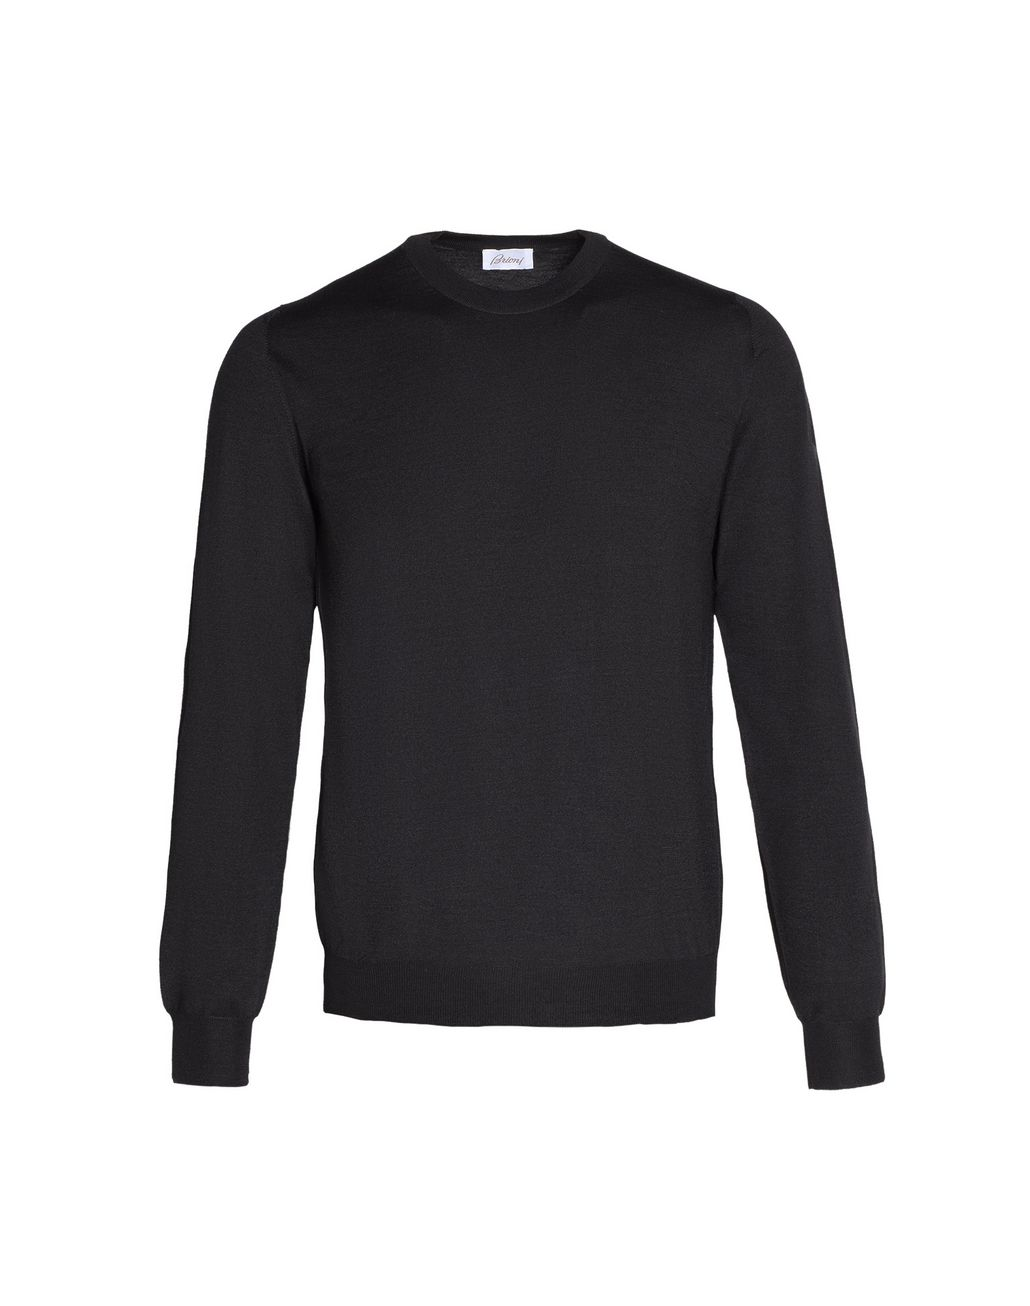 BRIONI Black Crew-Neck Sweater Knitwear U f